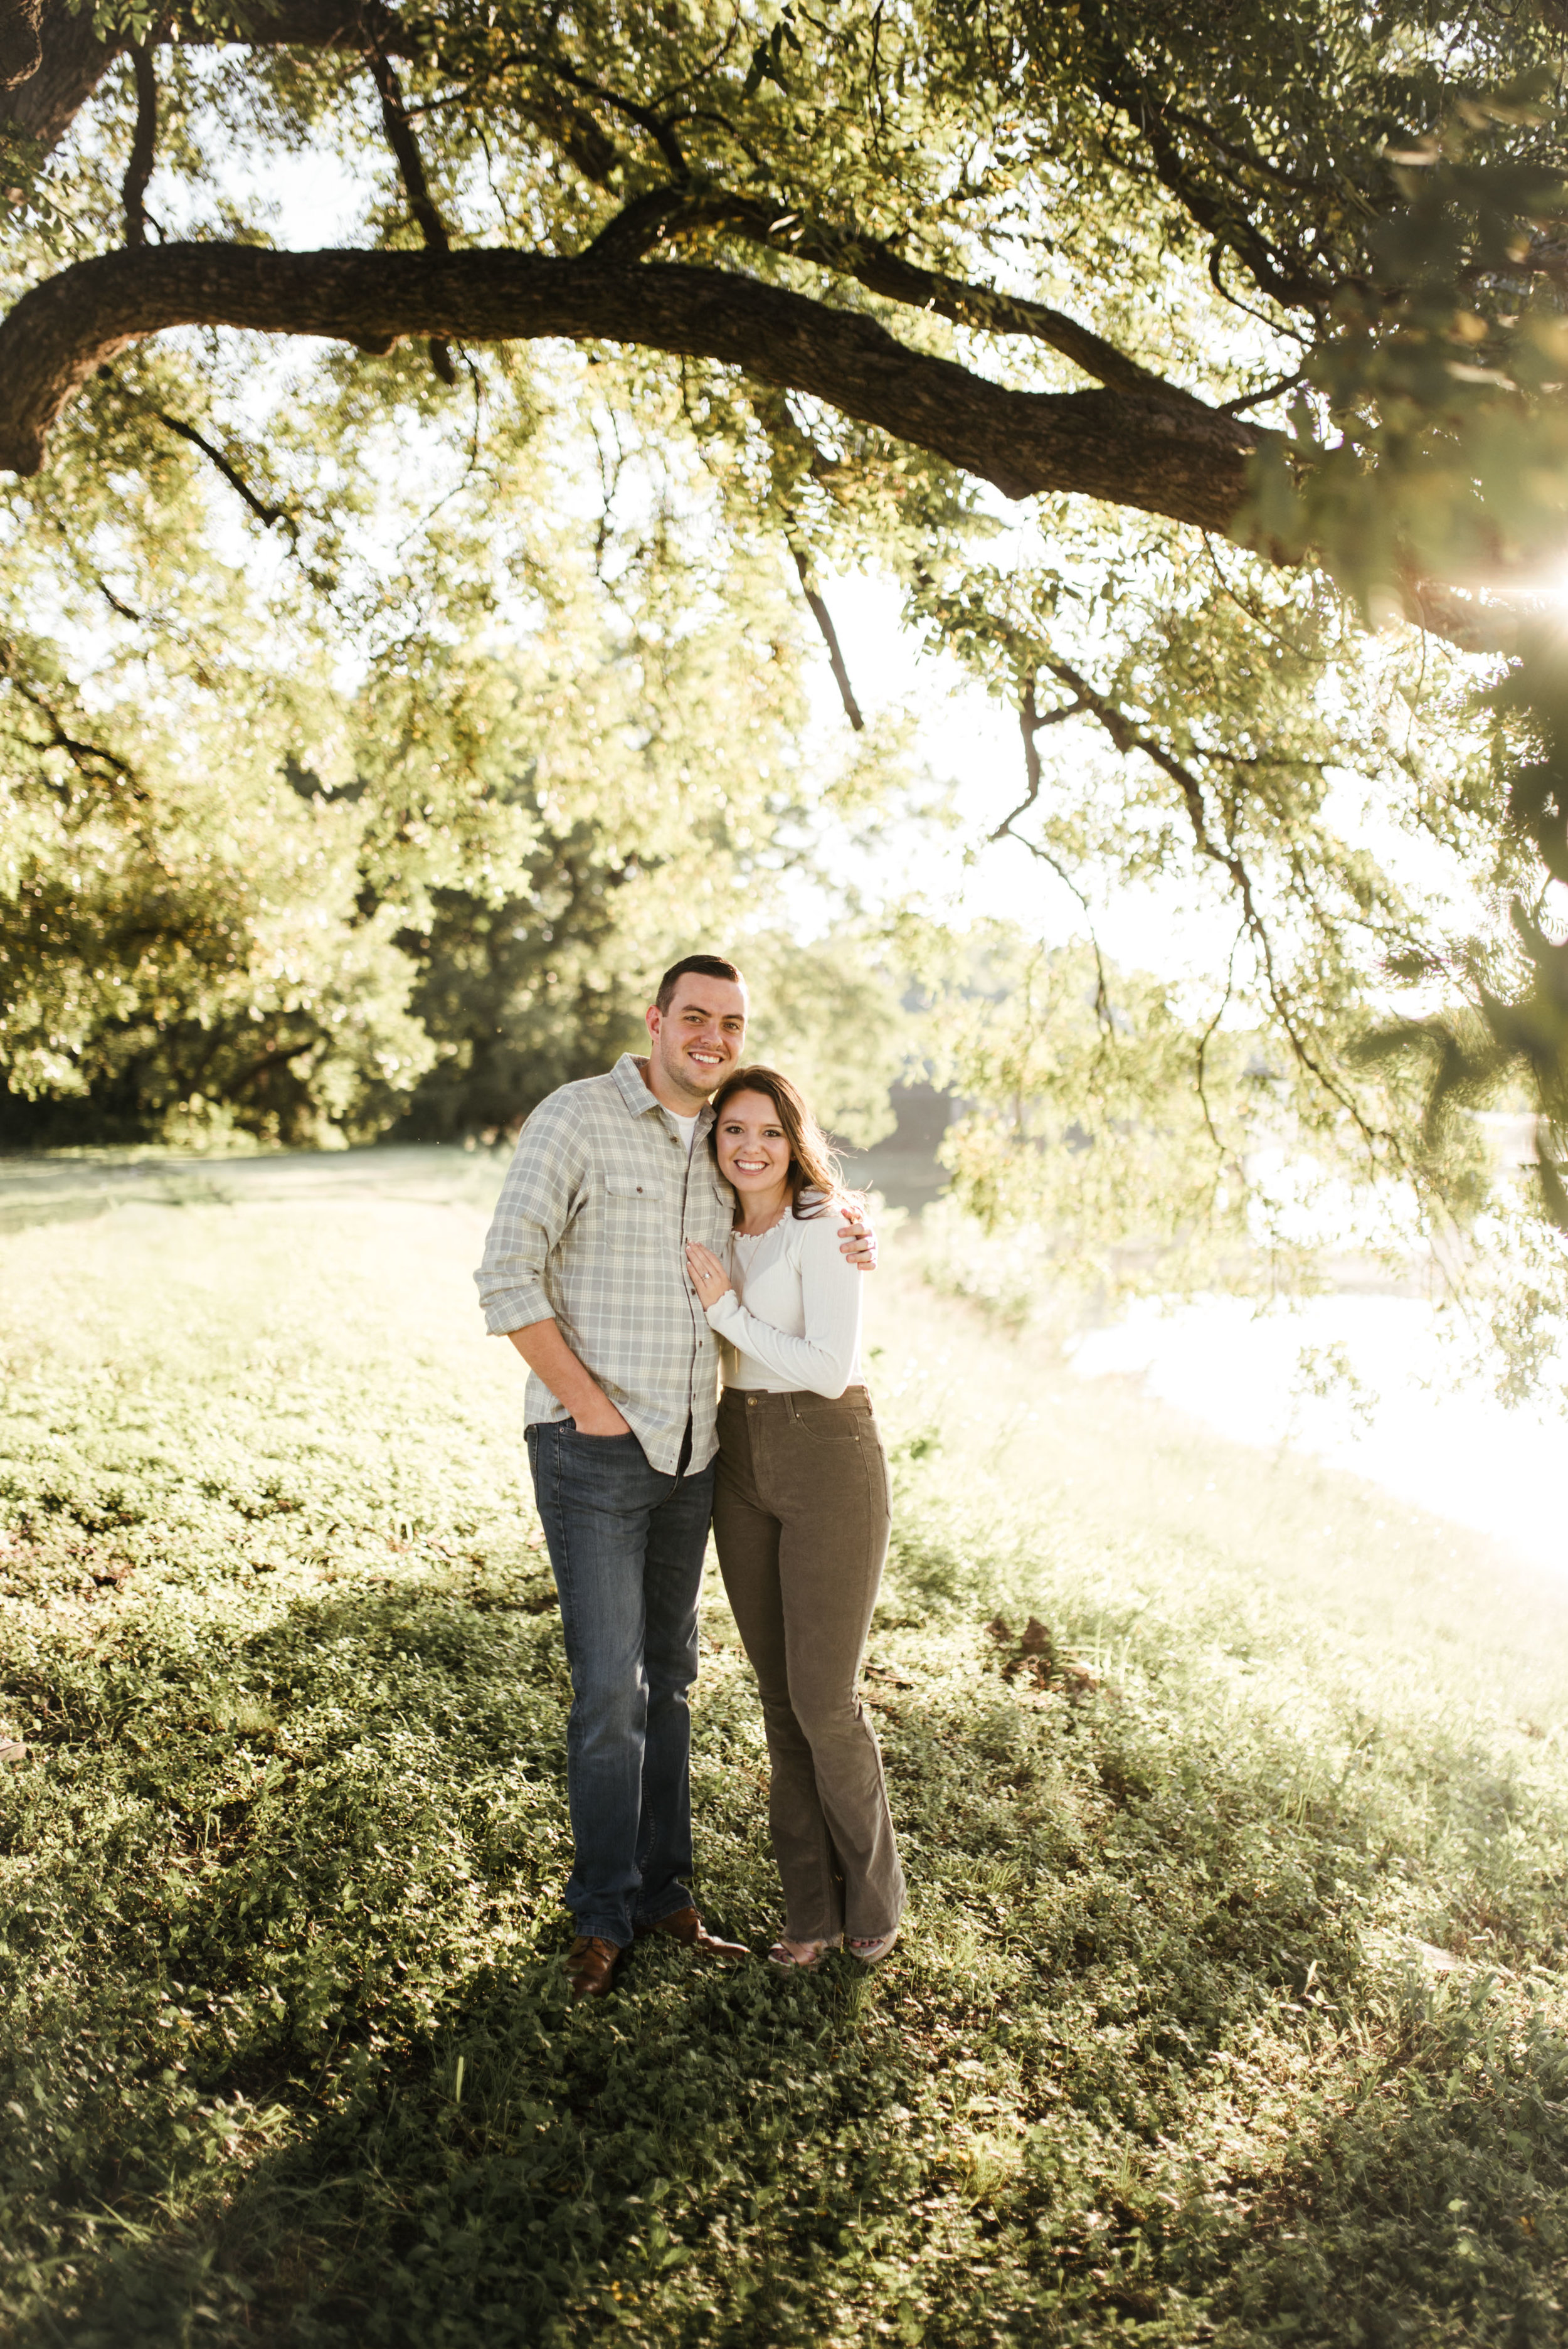 Fort Worth engagement session | Fort Worth engagement photographer | Fort Worth Wedding photographer | www.jordanmitchellphotography.com